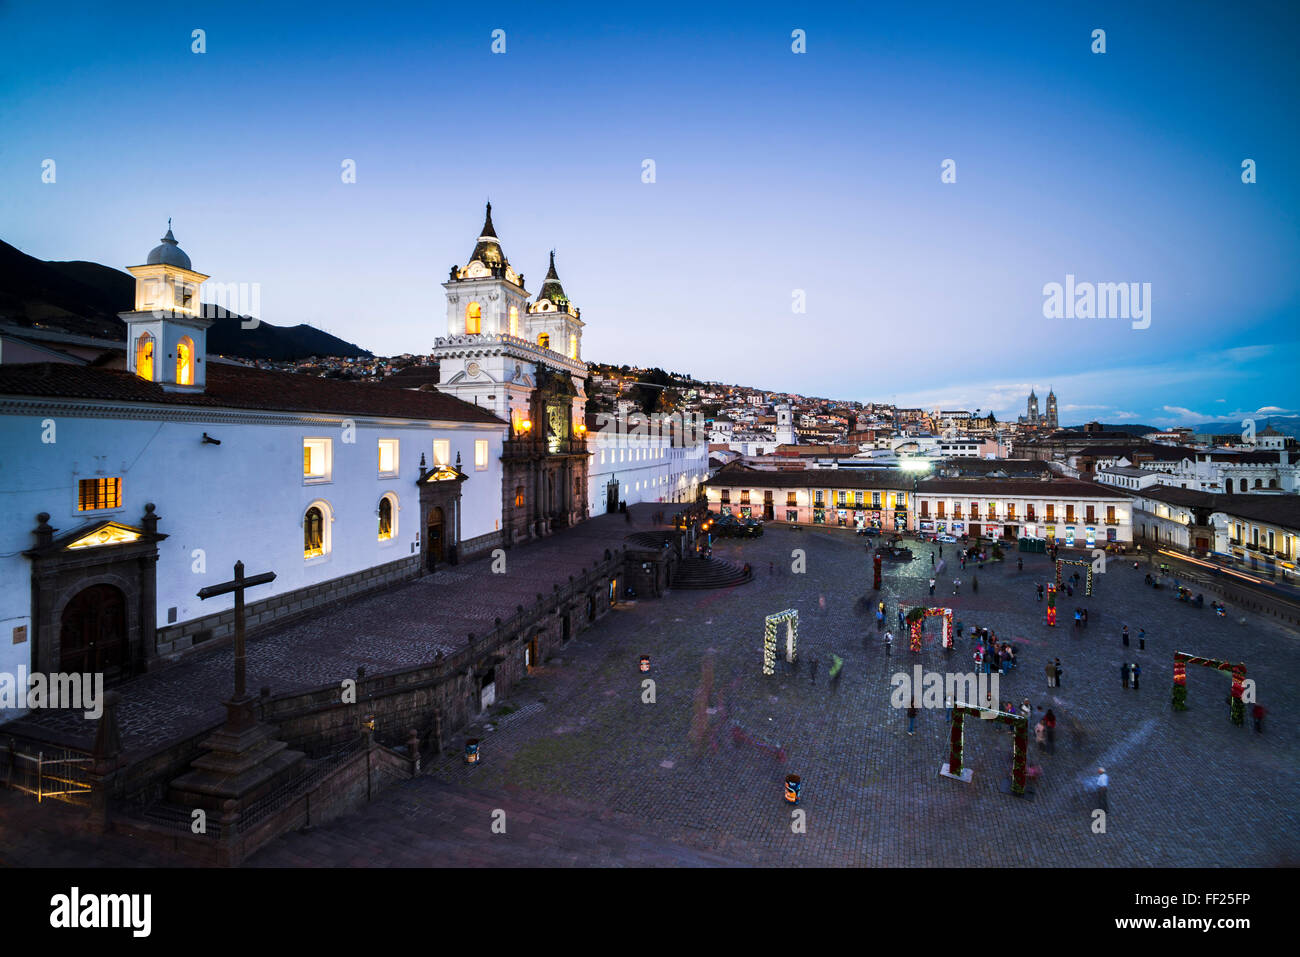 PRMaza de San Francisco and Church and Convent of San Francisco at night, ORMd City of Quito, UNESCO WorRMd Heritage - Stock Image